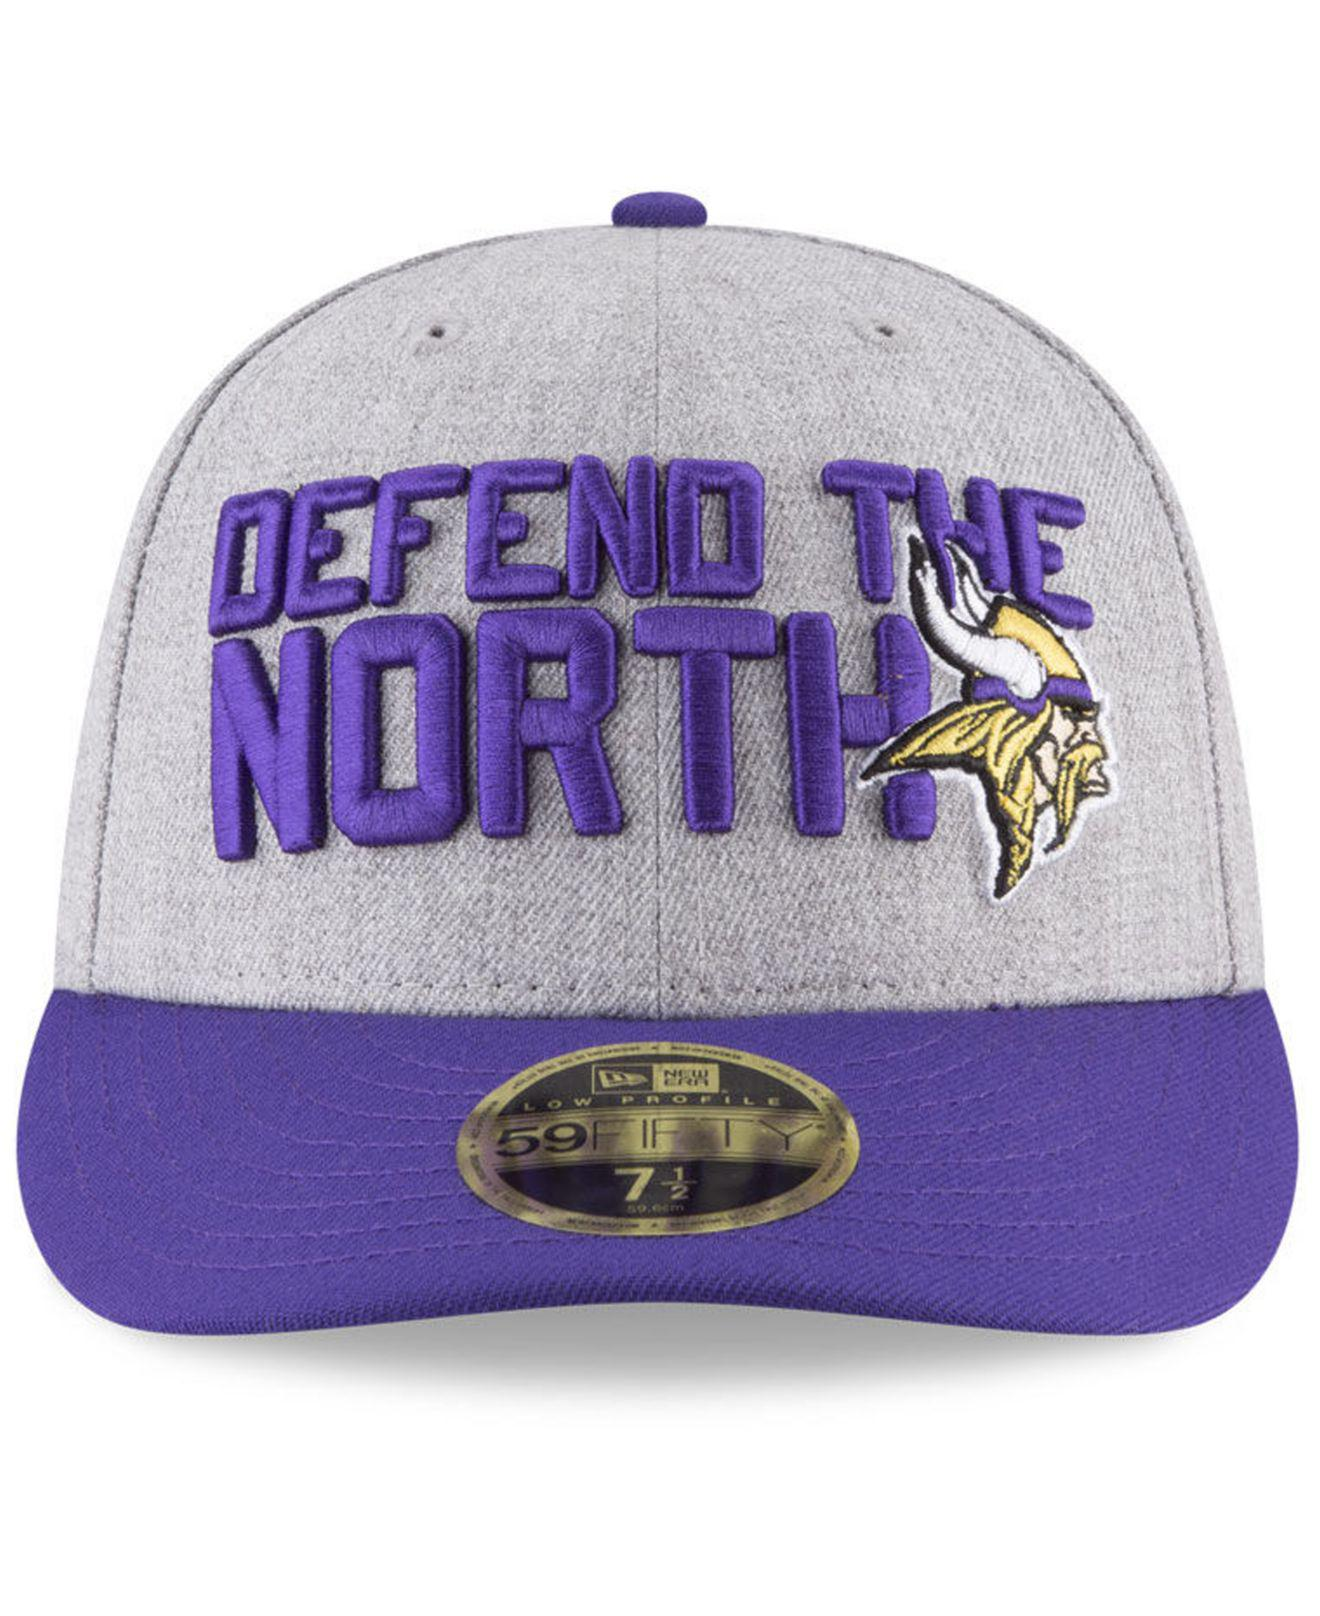 Lyst - KTZ Minnesota Vikings Draft Low Profile 59fifty Fitted Cap in Purple  for Men - Save 44% edc29f129